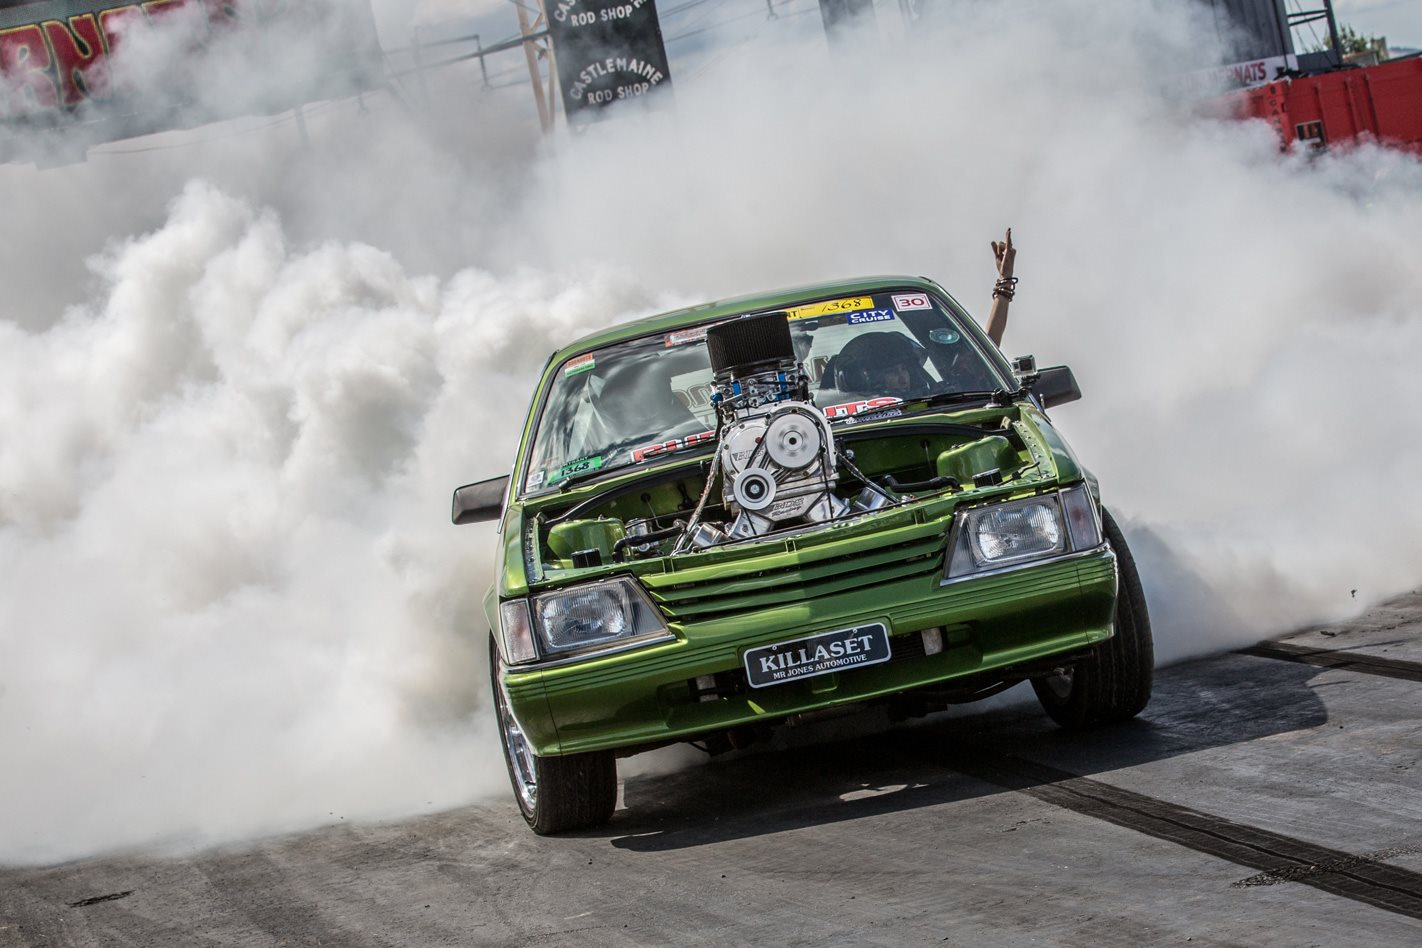 VK Commodore blown burnout KILLASET